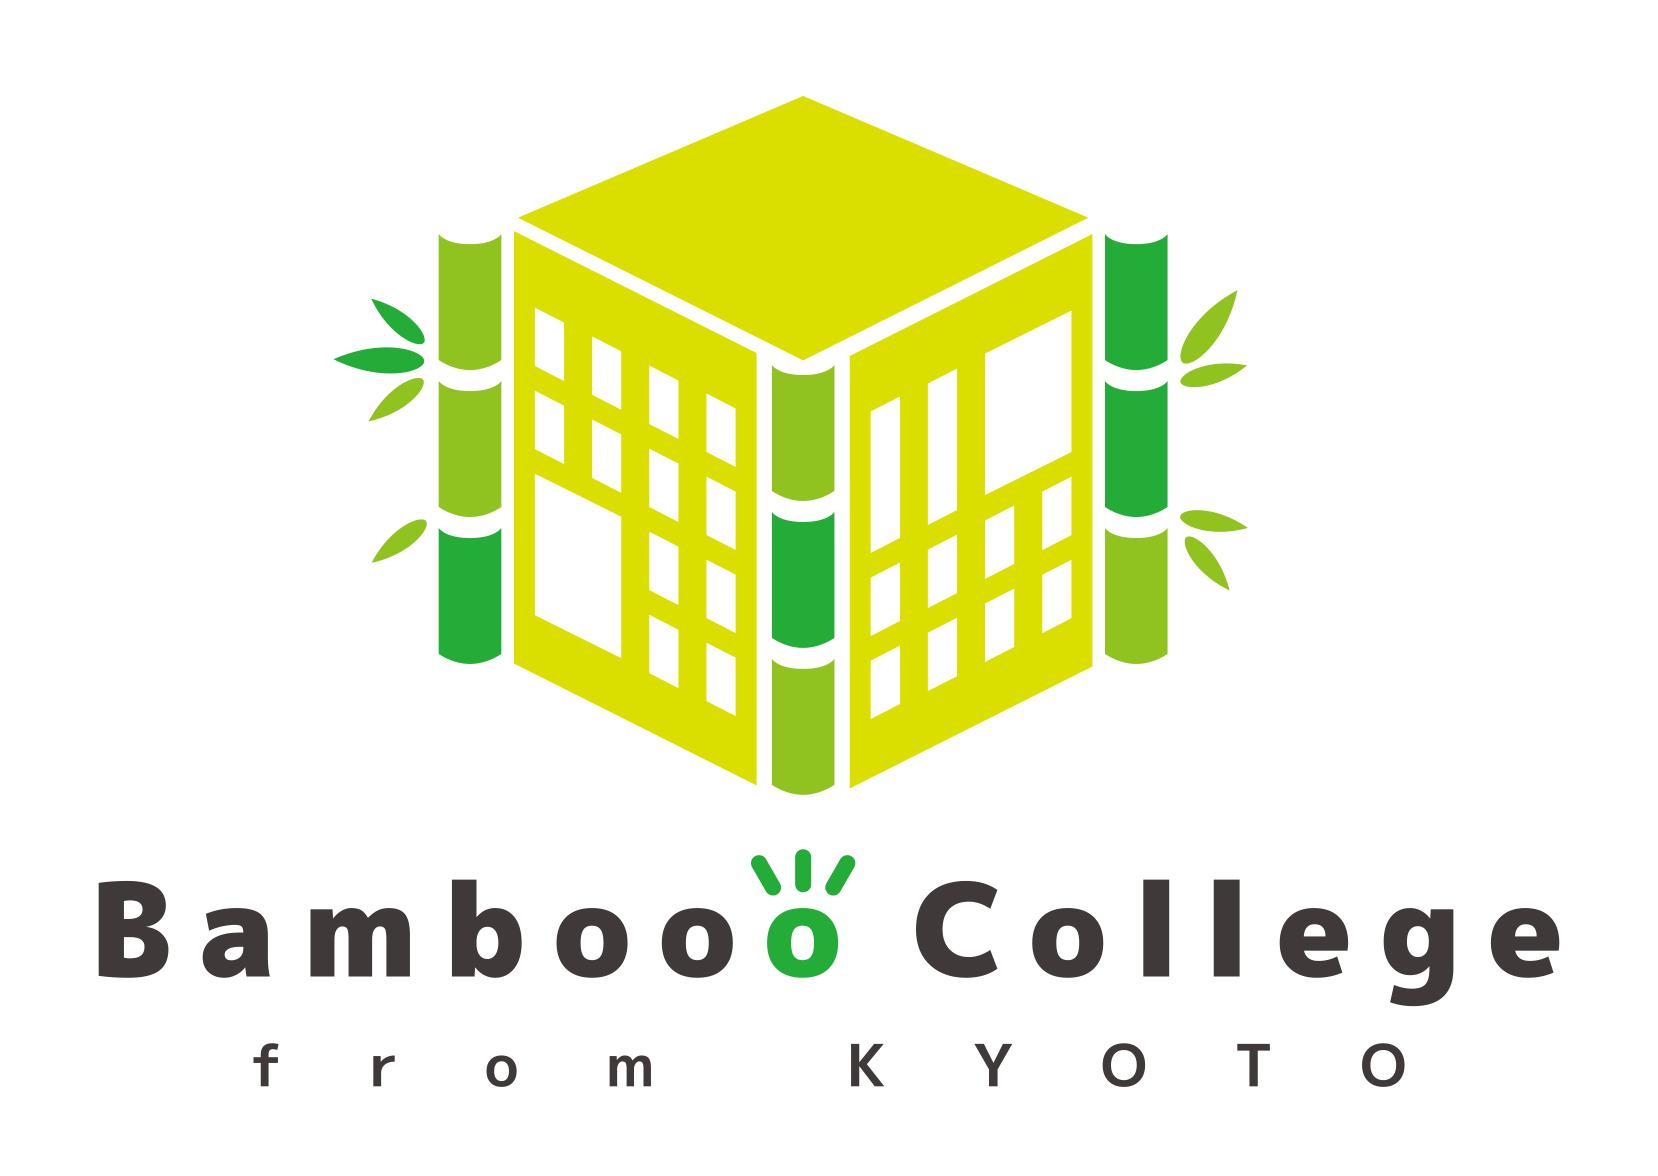 What's BamboooCollage?